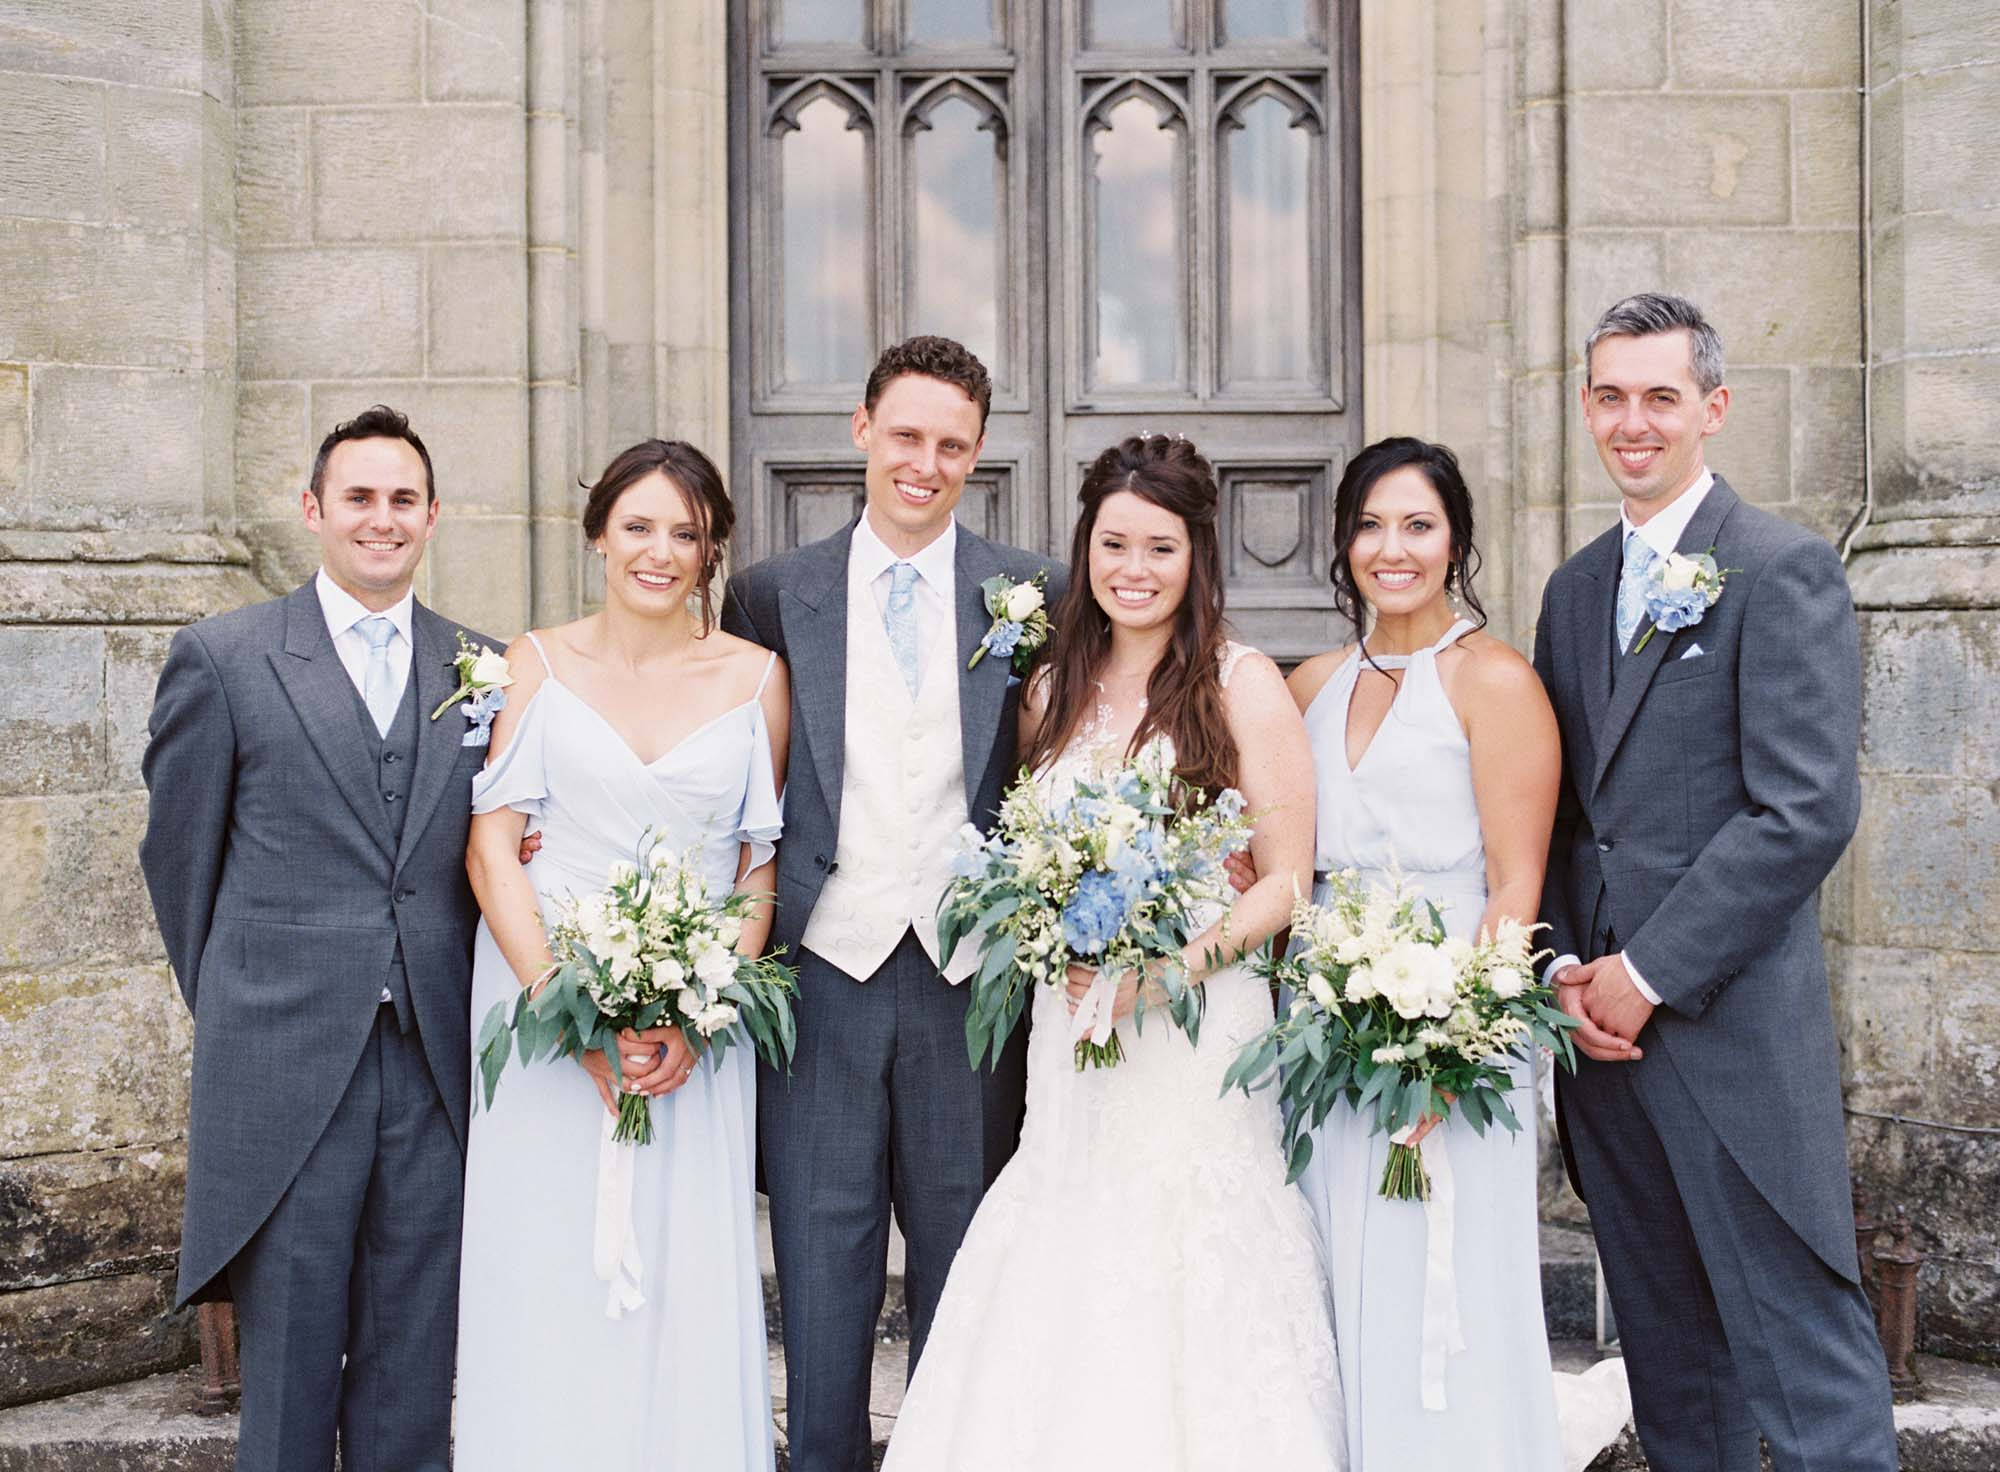 Bride with bridal party at Chiddingstone Castle wedding